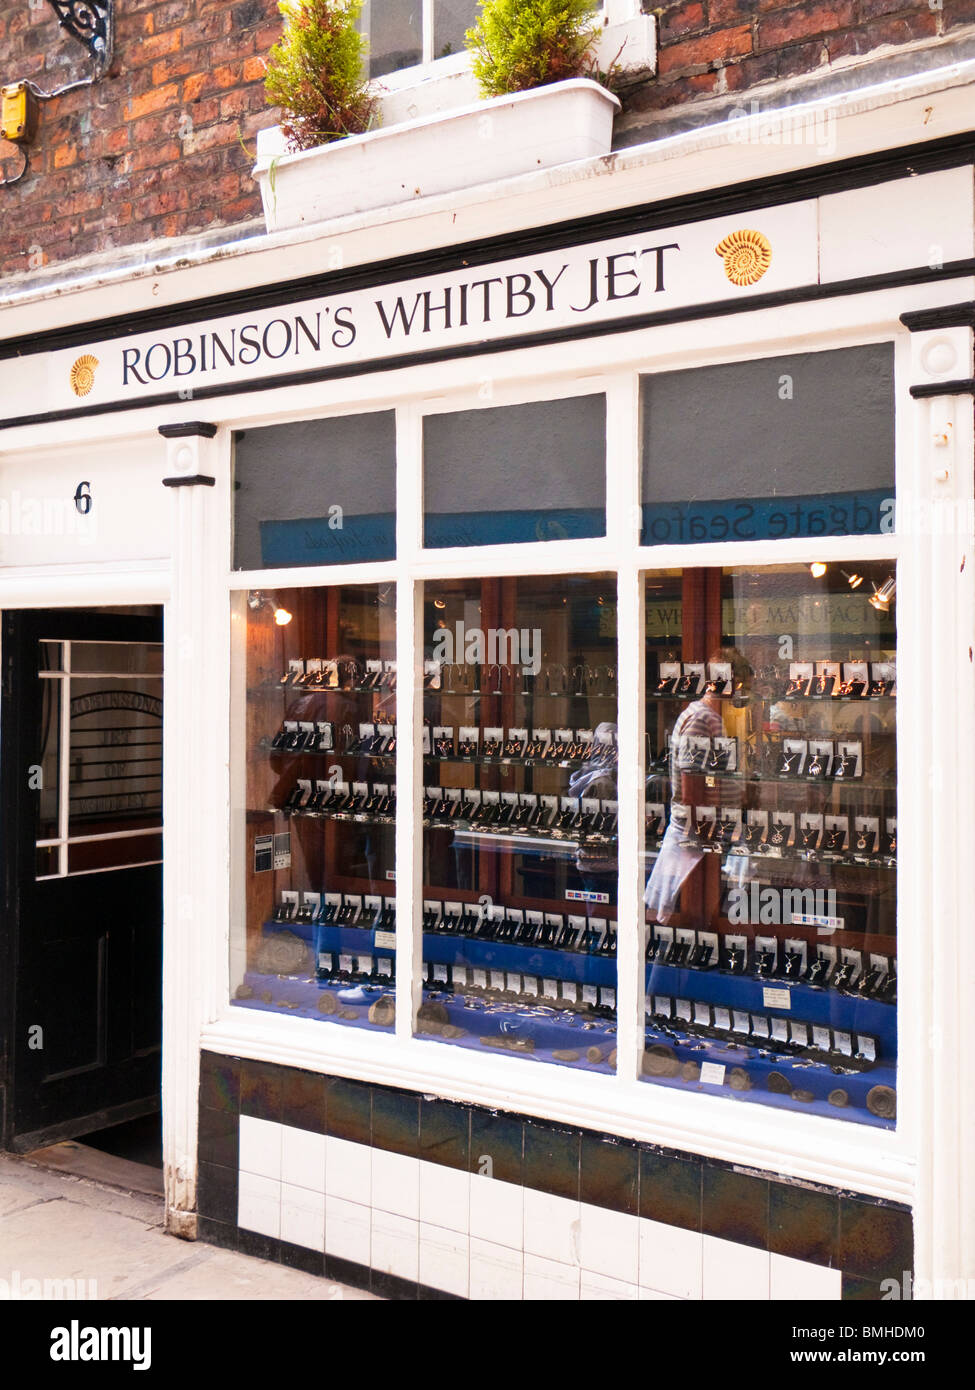 Shop selling traditional Whitby Jet in Whitby town centre, North Yorkshire England UK - Stock Image